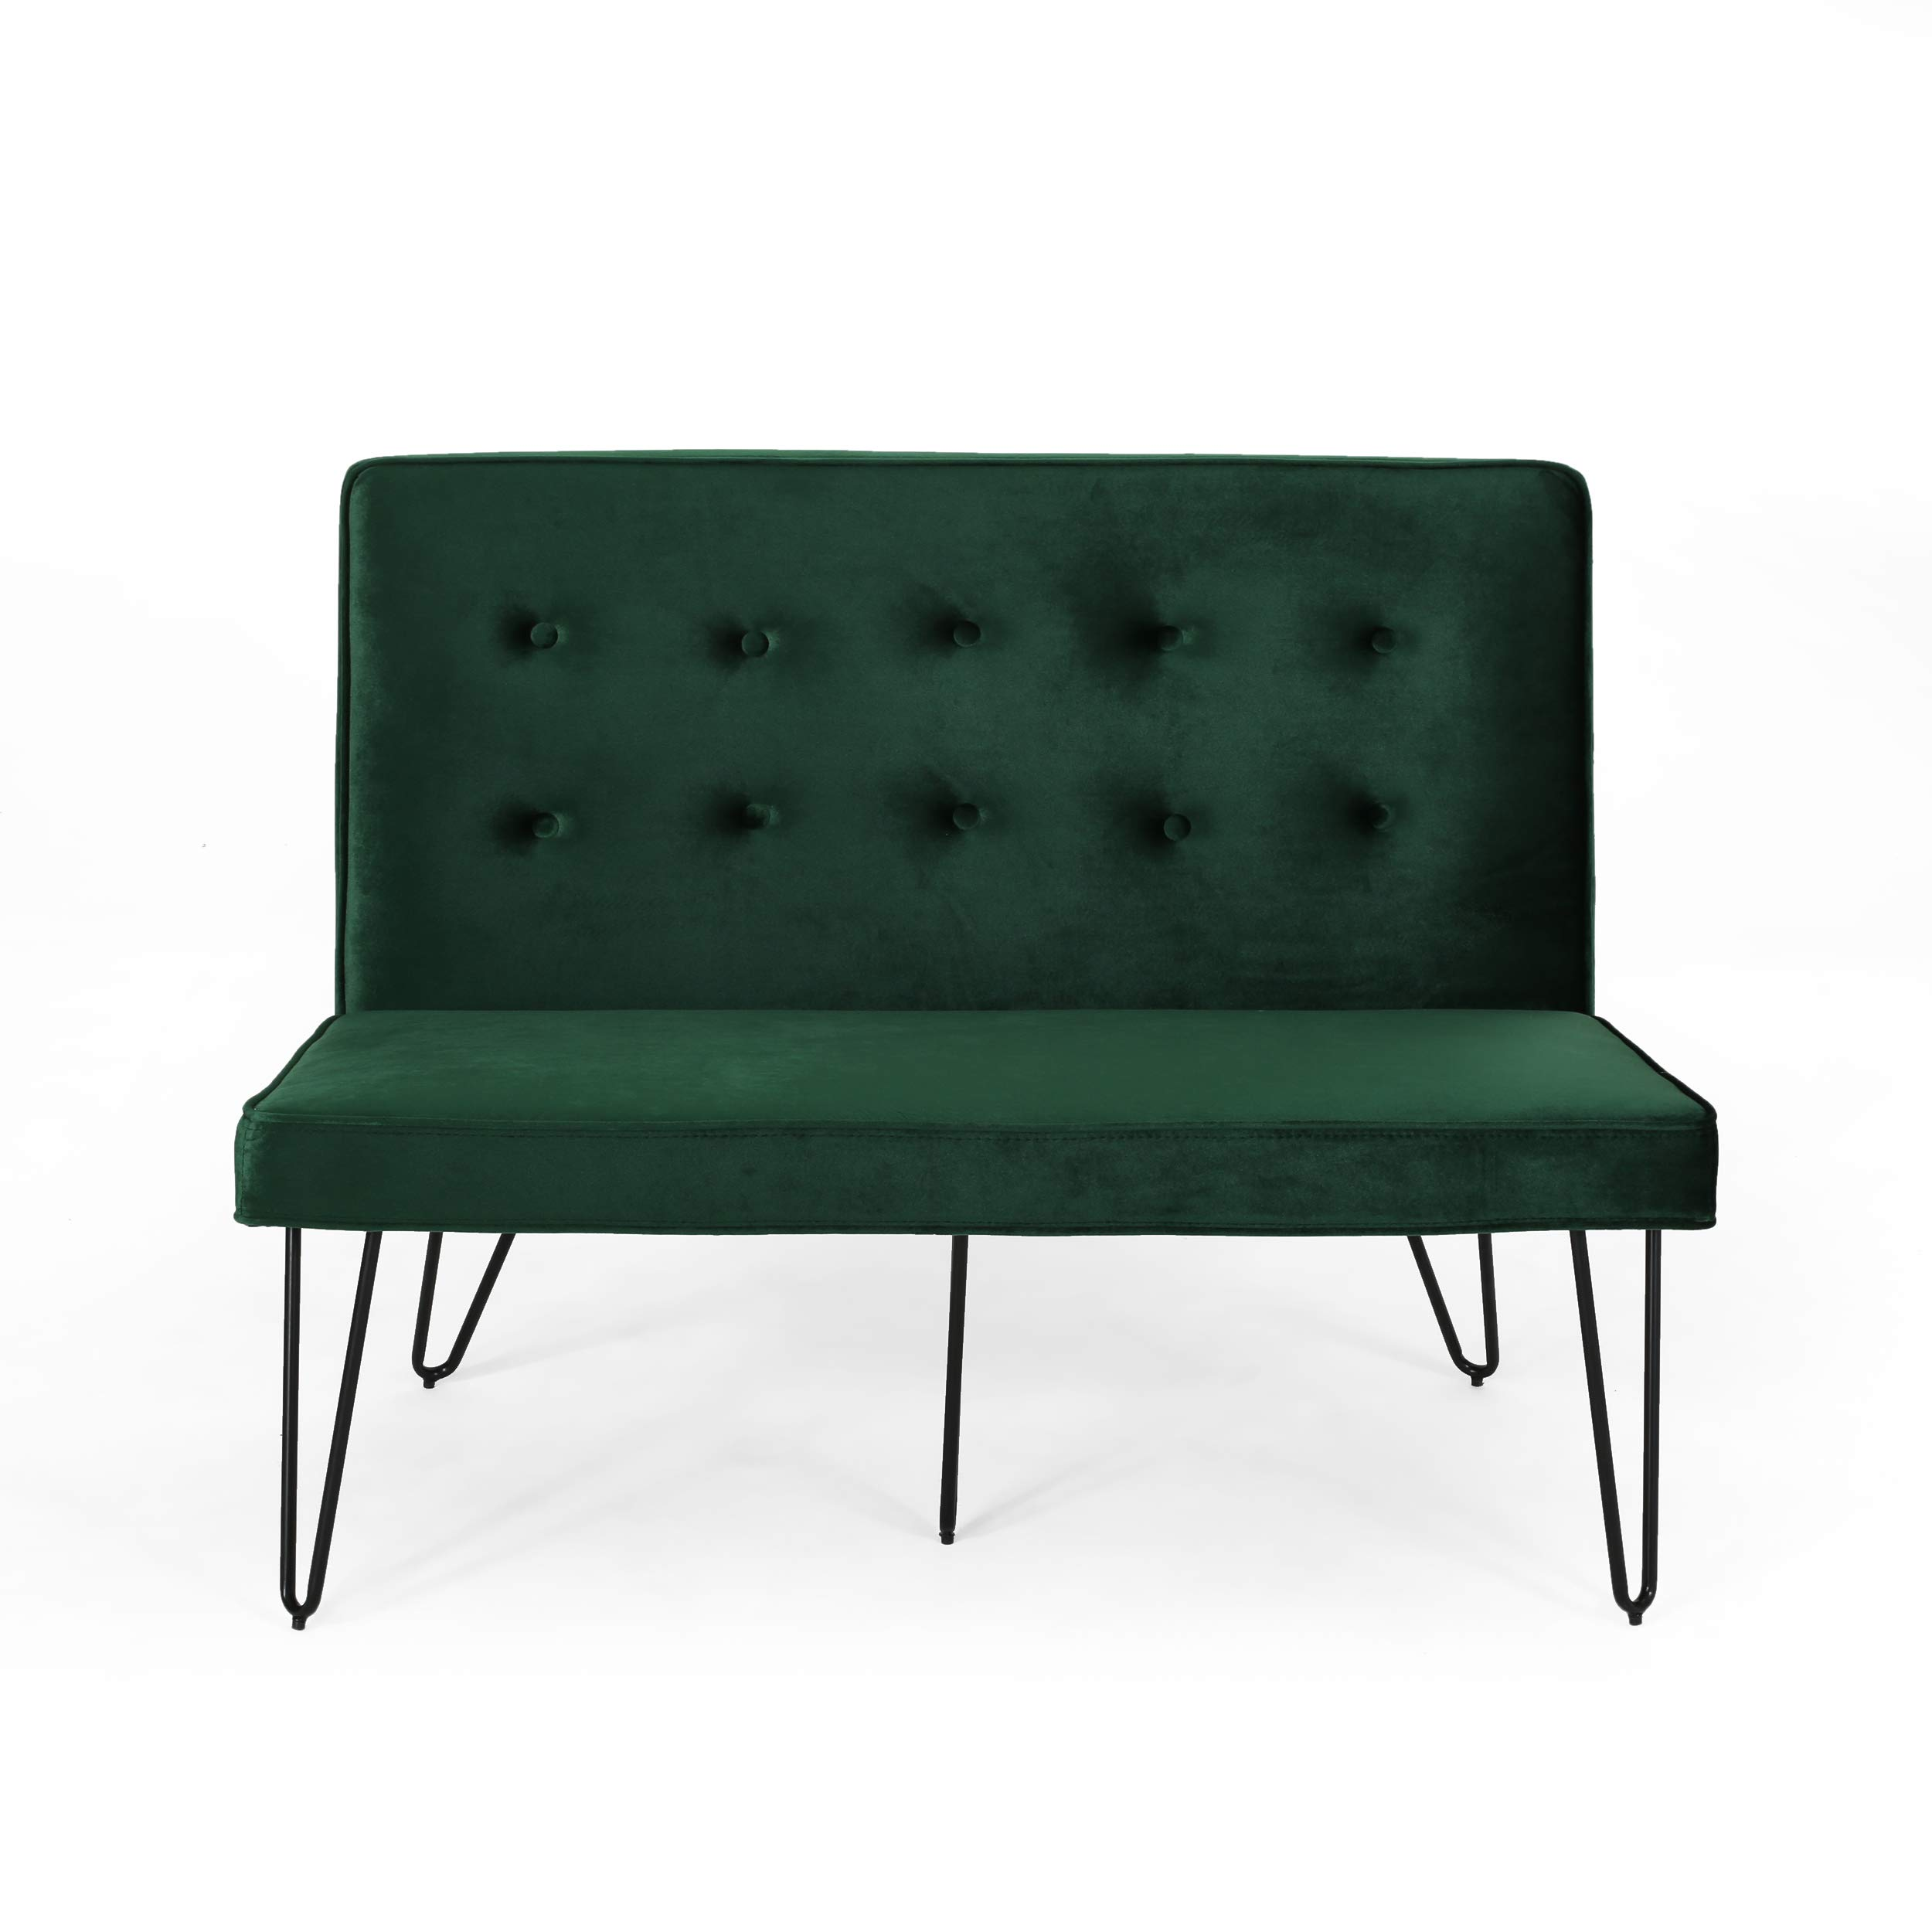 Beatrice Minimalist Dining Bench Settee with Tufted Velvet Cushion and Iron Legs - Emerald and Black by Great Deal Furniture (Image #1)